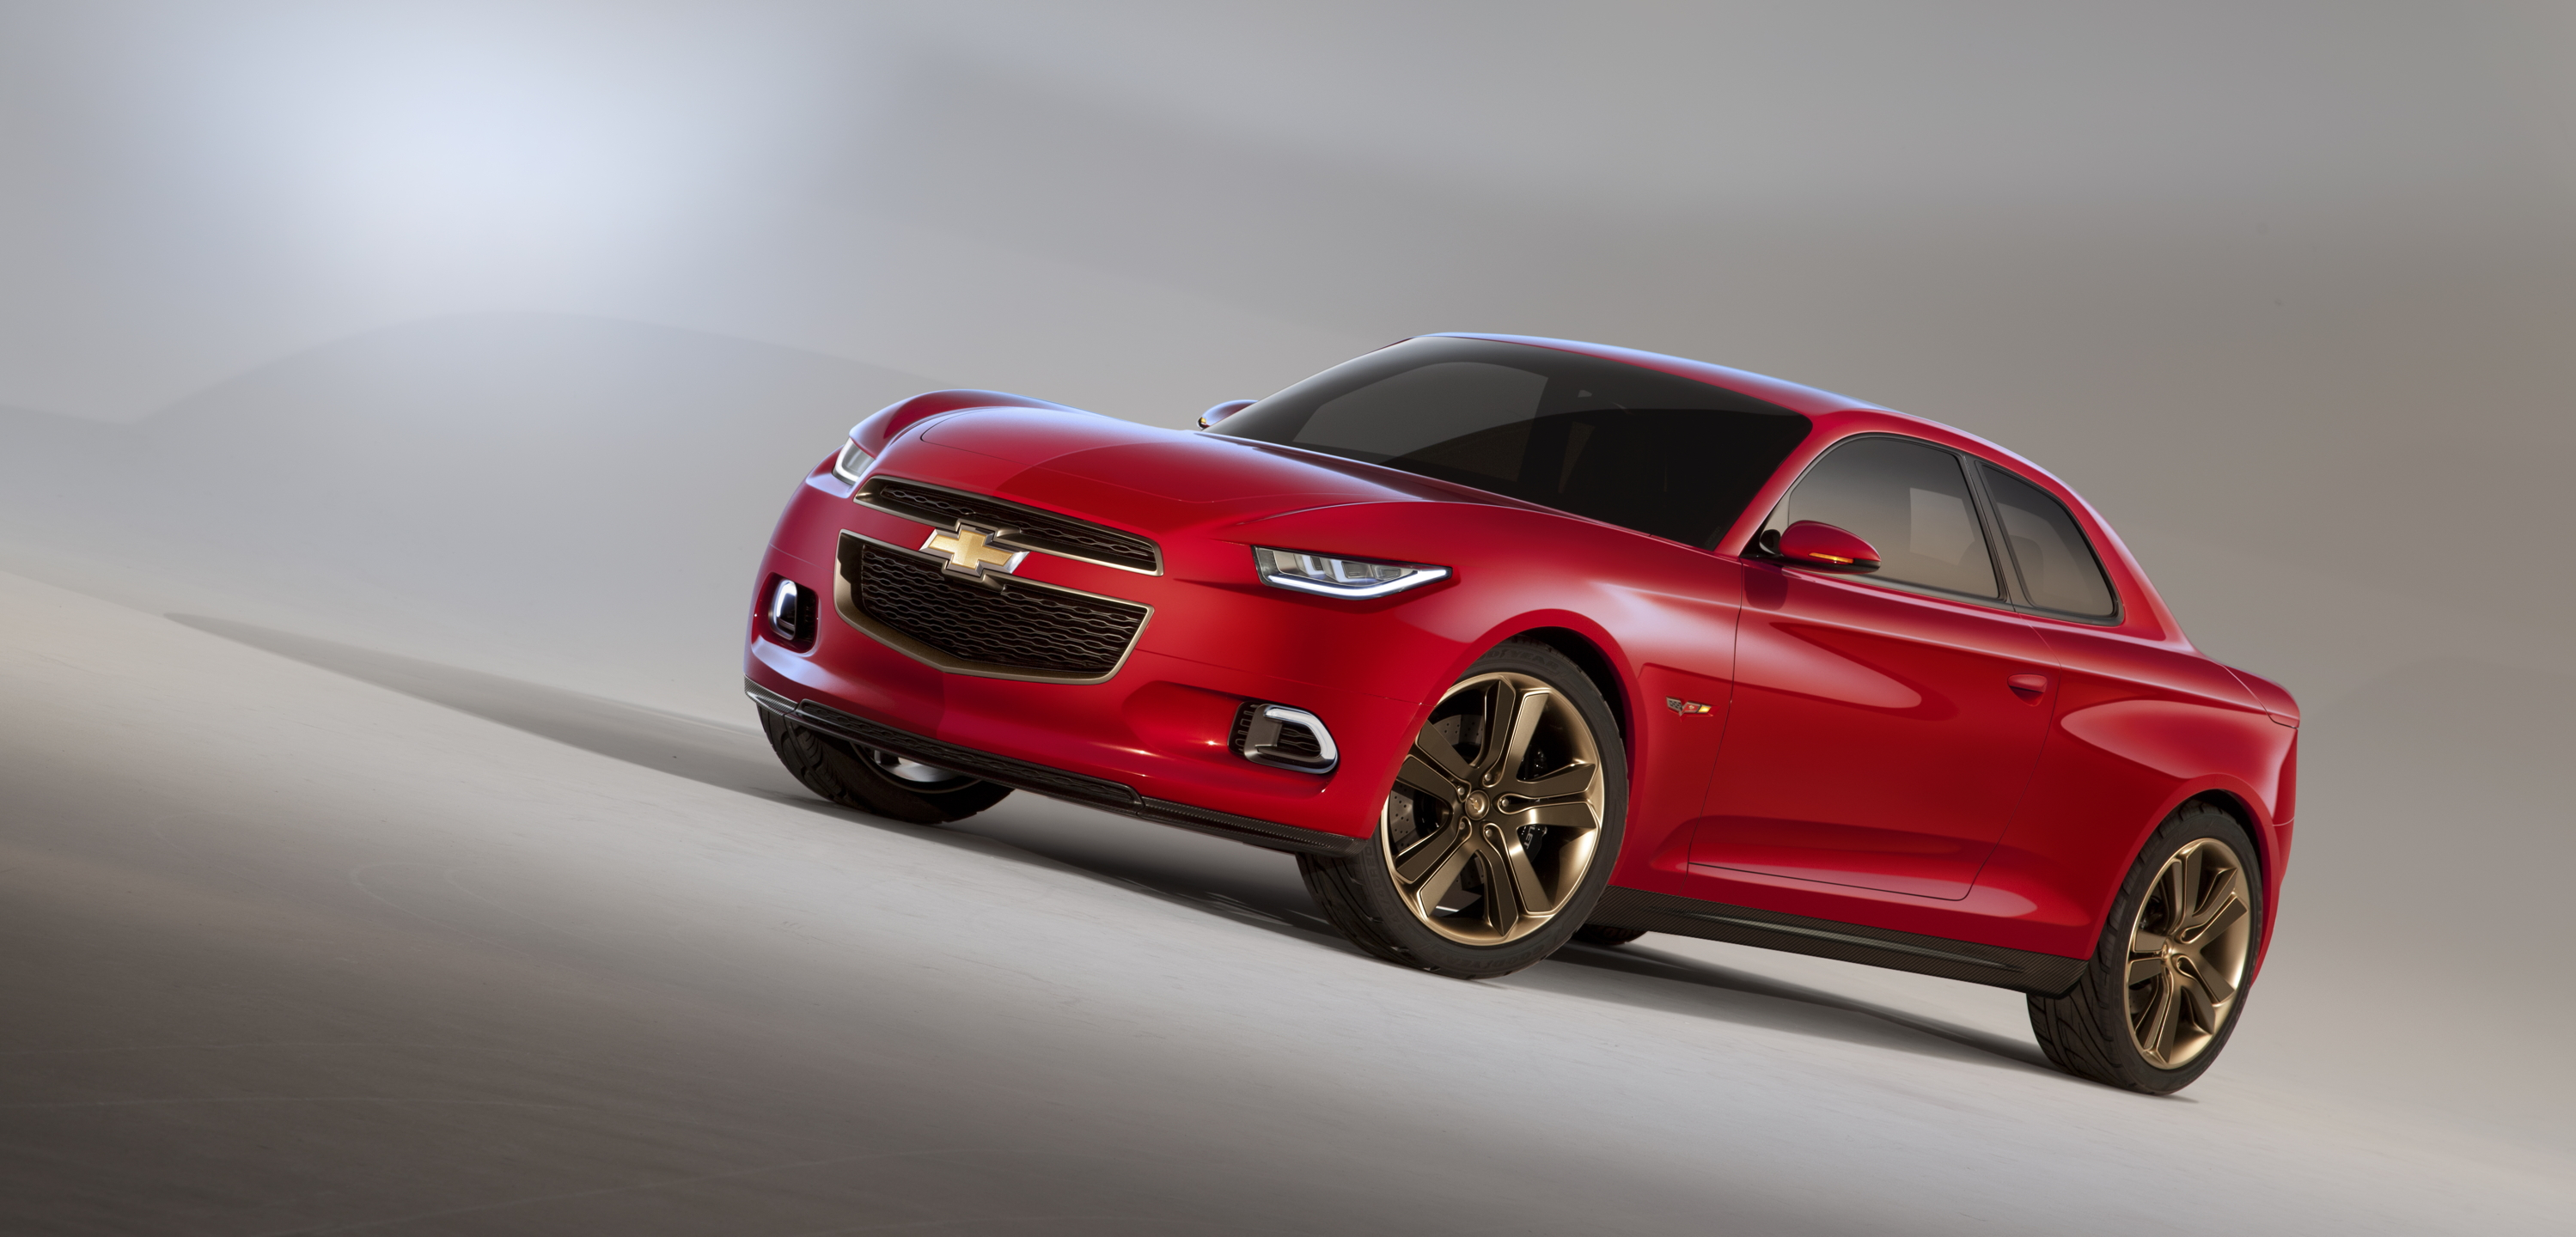 The 2012 Chevrolet Code 130R concept. Photo courtesy of GM